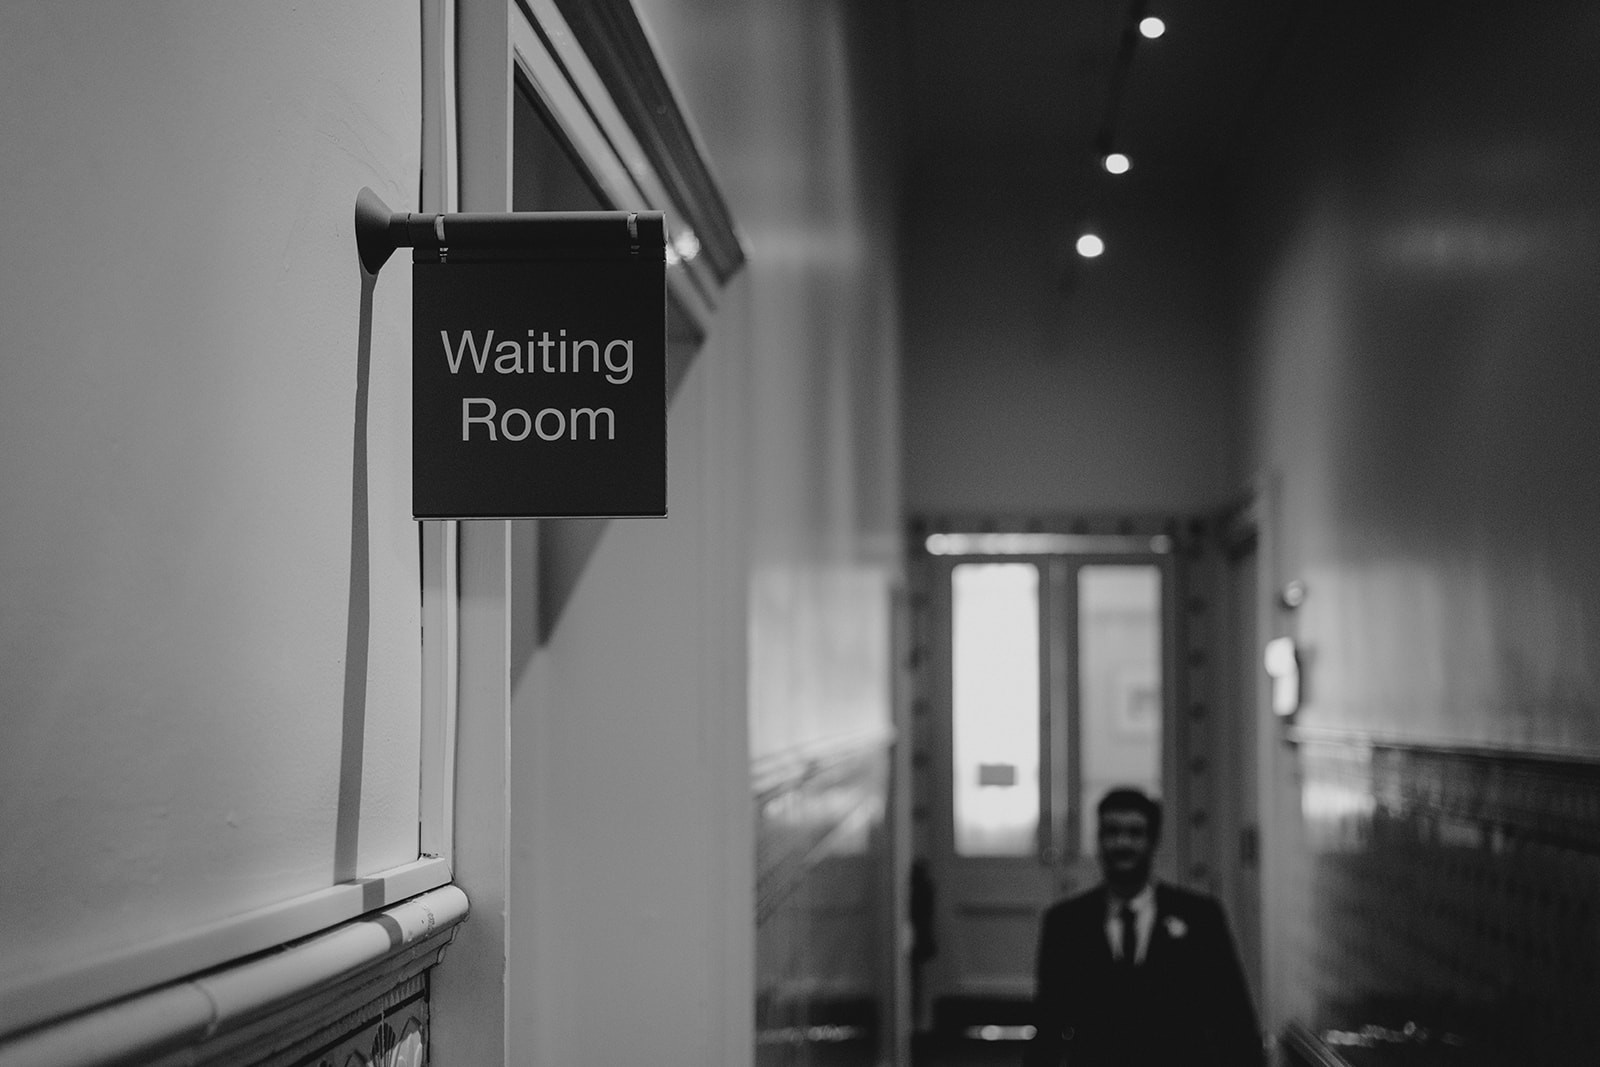 Waiting room sign inside Leeds Town Hall